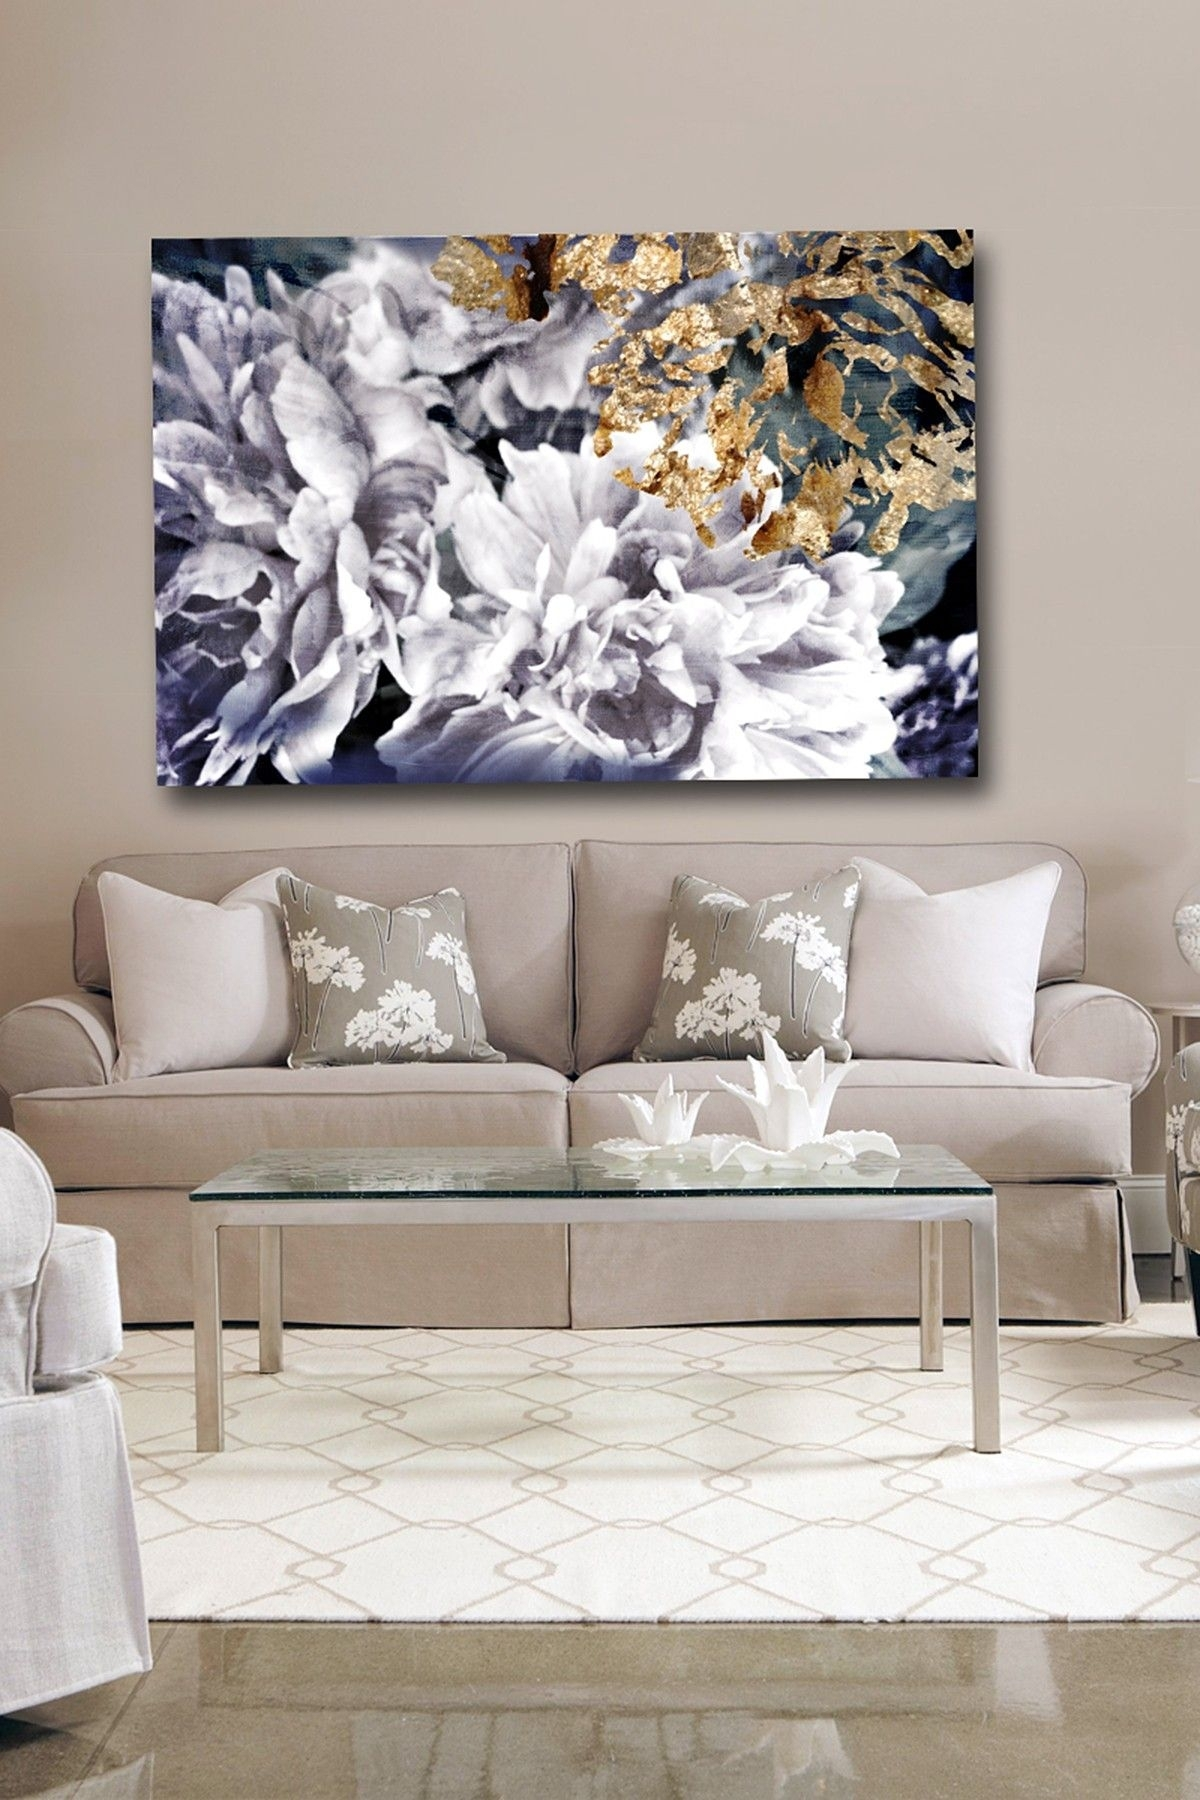 Oliver Gal Dos Gardenias Canvas Wall Art | Hautelook | Home Pertaining To Most Recent Mississauga Canvas Wall Art (View 14 of 15)